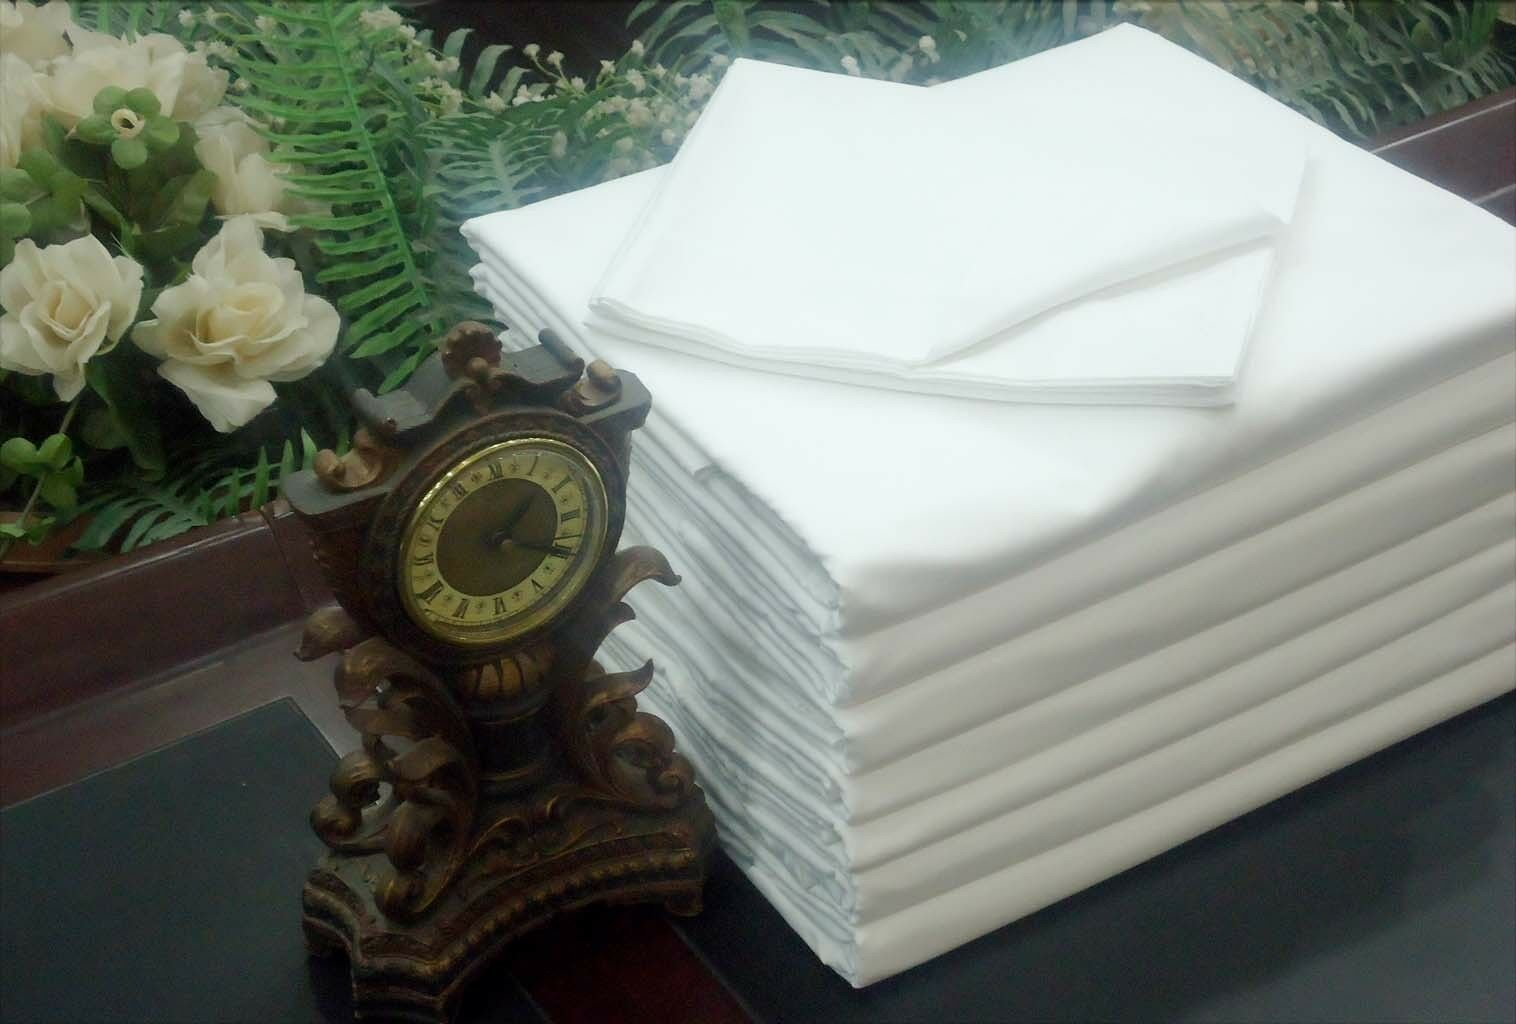 LOT OF 12 NEW QUEEN SIZE FLAT BED SHEET T180 PERCALE BRIGHT WHITE TITANIUM GRADE